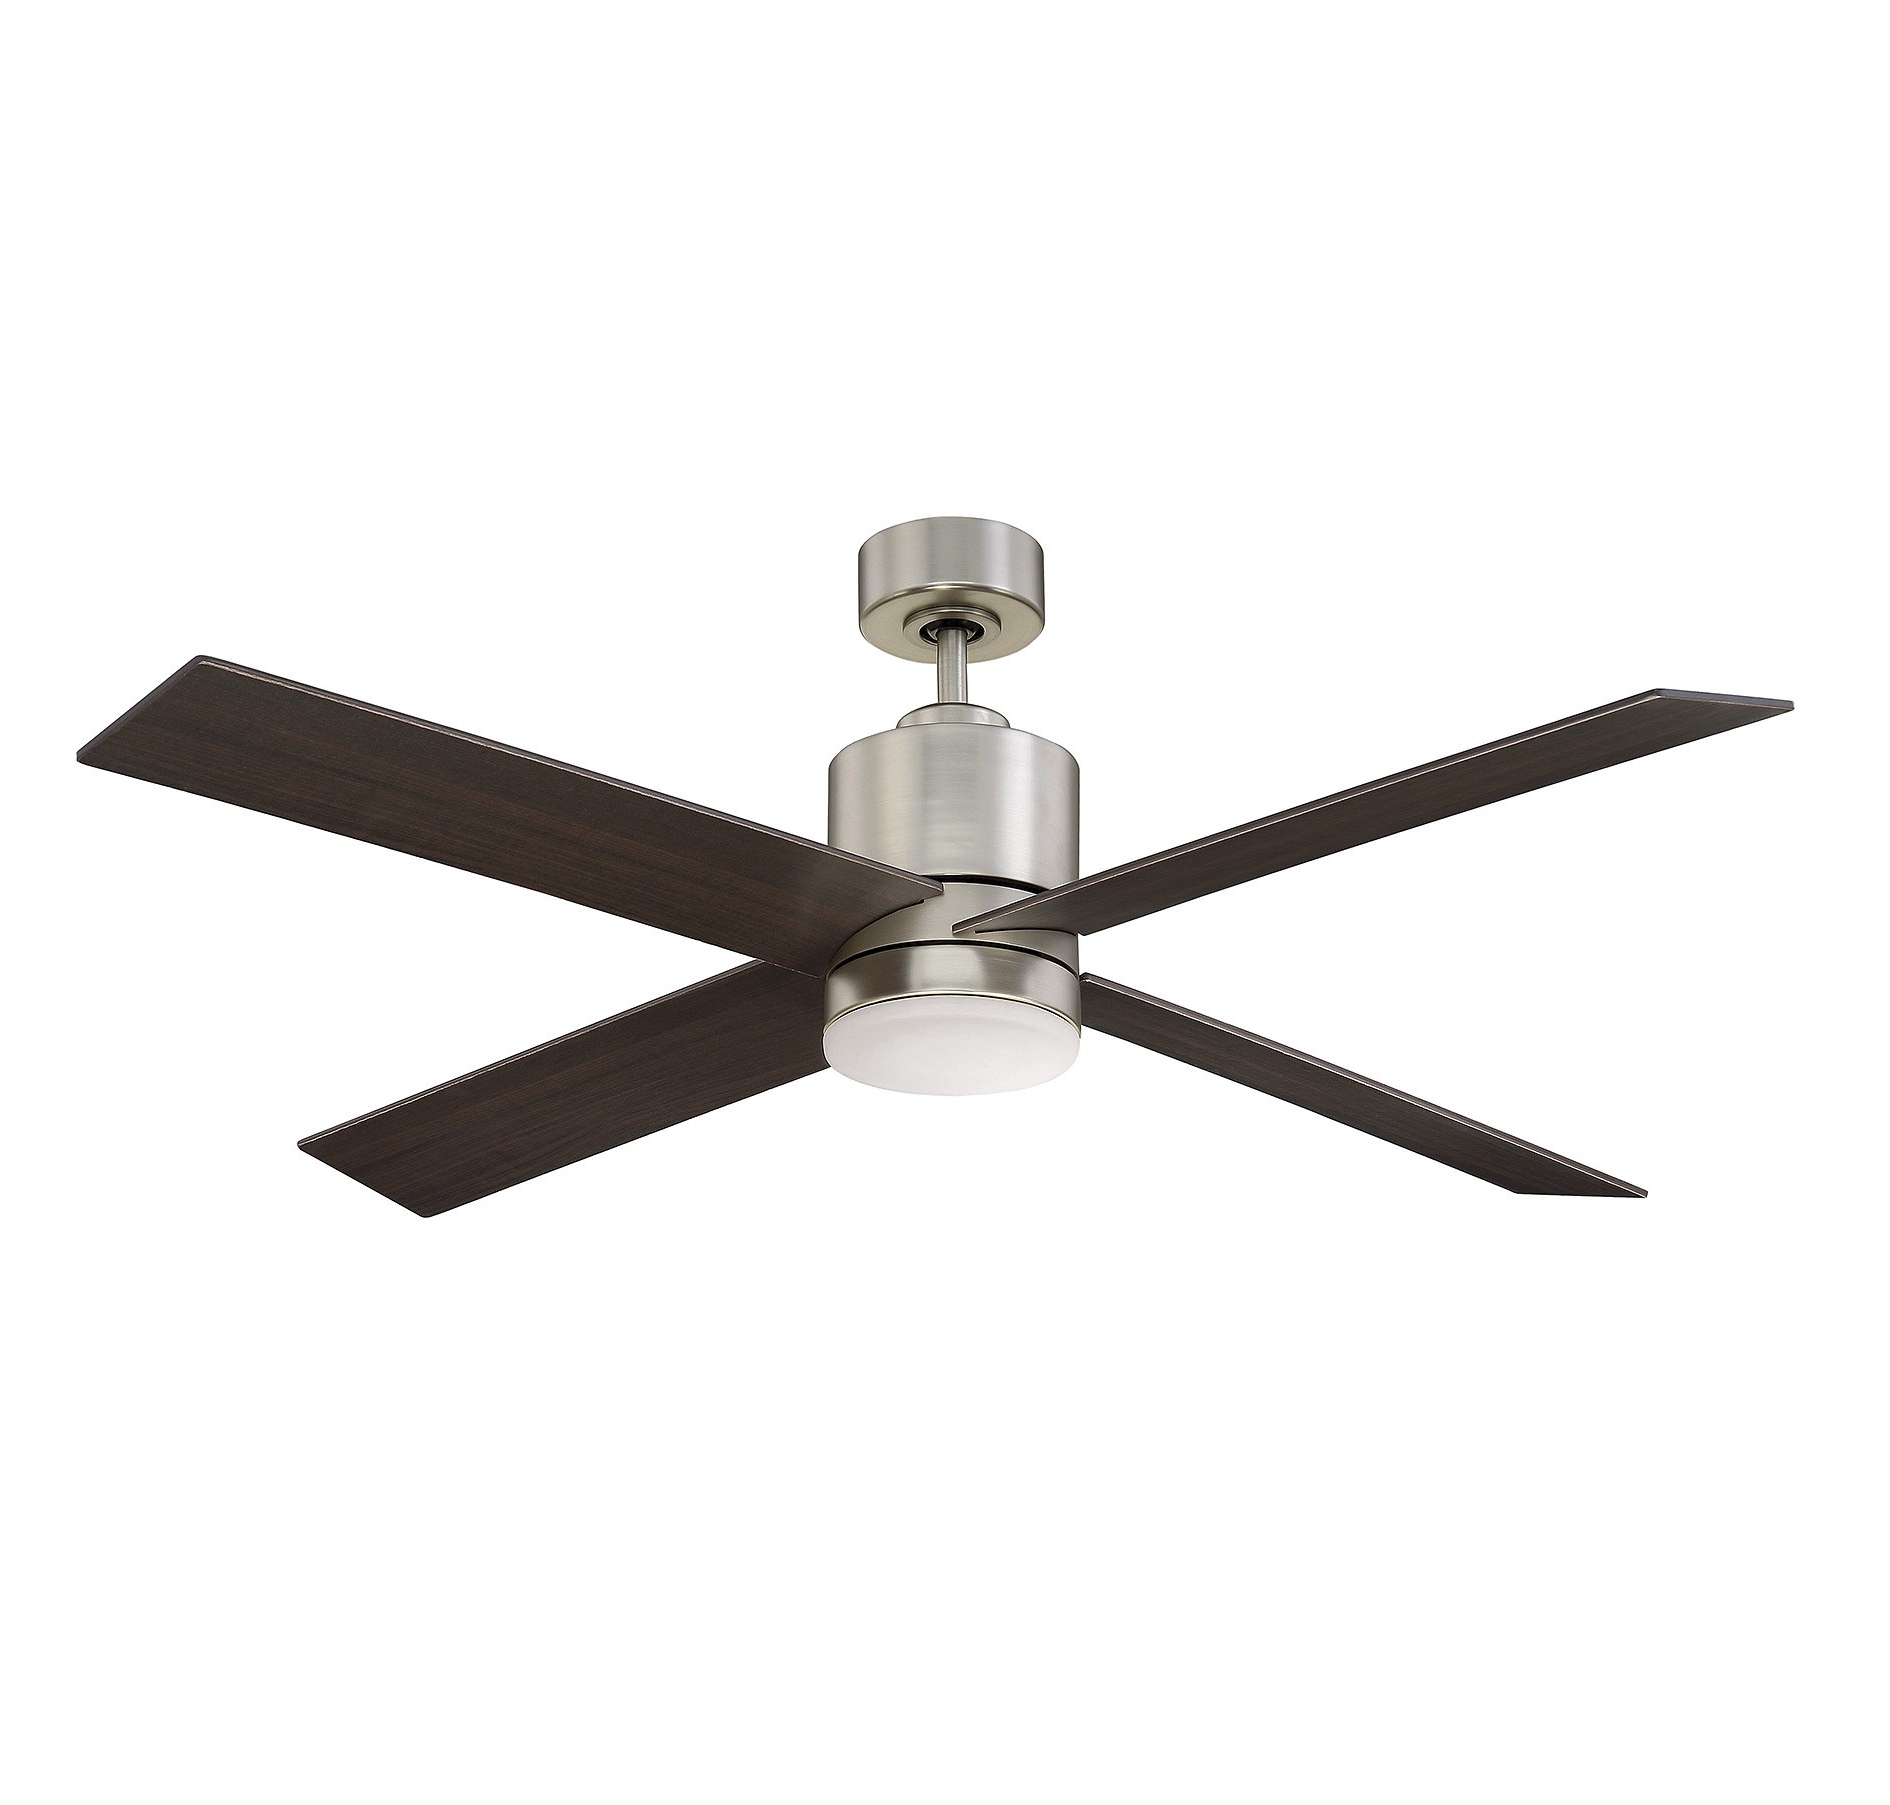 Trendy 52 6110 4Cn Sn Dayton 52 Inch 4 Blade Ceiling Fansavoy House Pertaining To Coastal Outdoor Ceiling Fans (View 13 of 20)